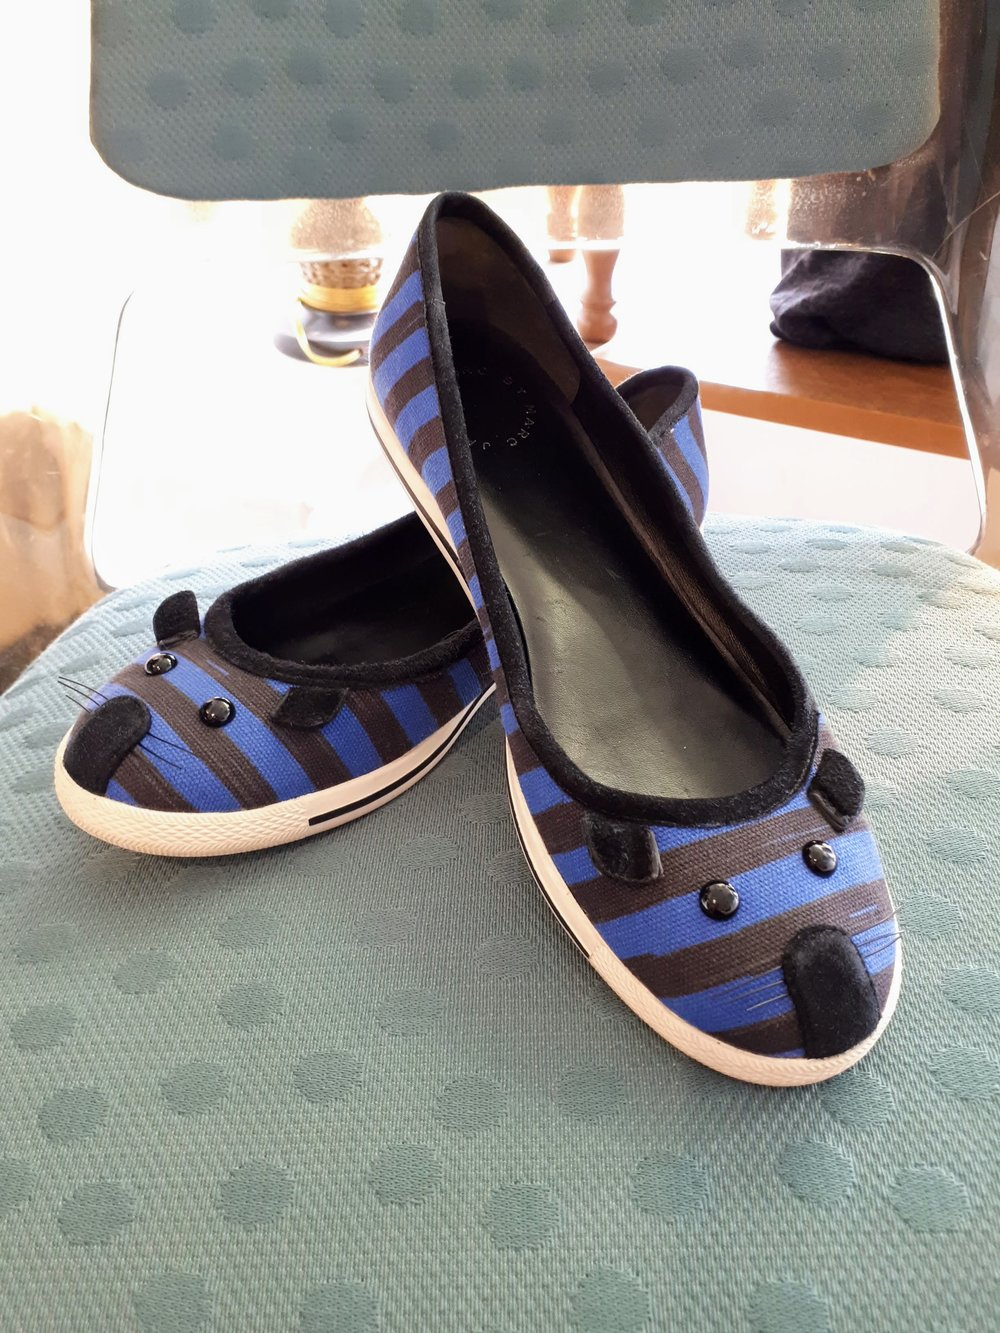 Marc Jacobs shoes; S8, $42